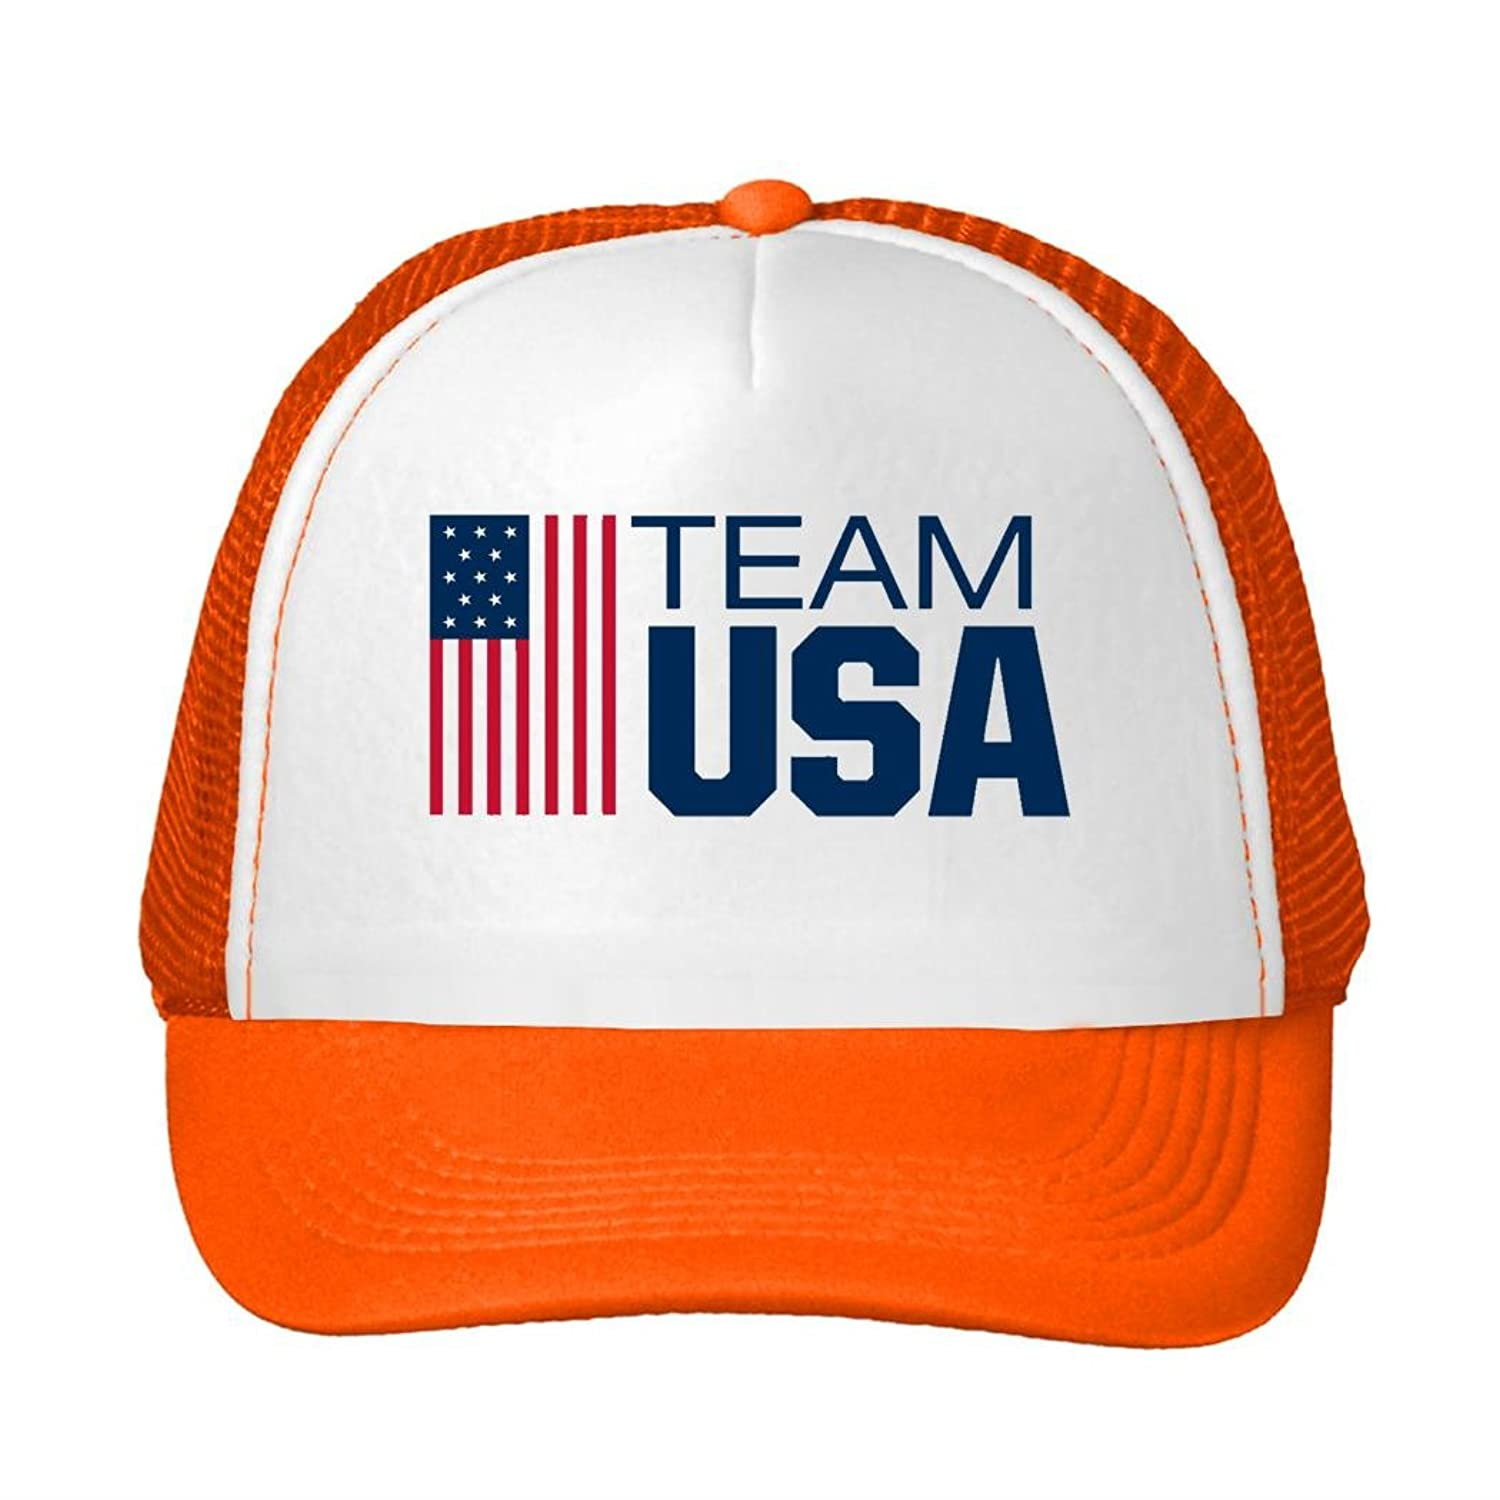 HE TEAM USA Flag Adjustable Breathable Mesh Caps Sun Hats